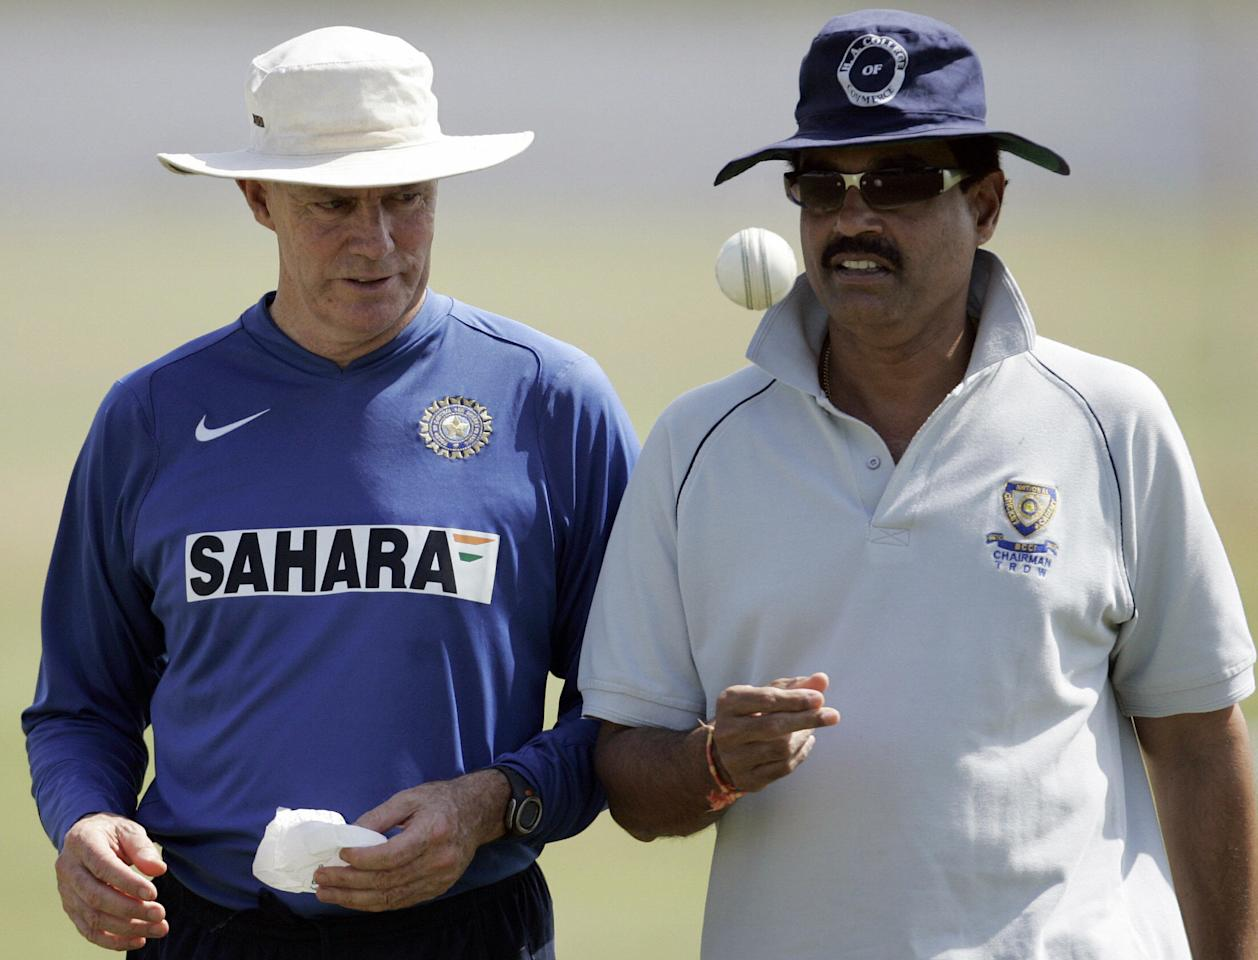 Ahmedabad, INDIA:  Chief Indian cricket selector Dilip Vengsarkar (R) tosses the ball while talking to coach Greg Chappell (L) during a practice session at the Sardar Patel Stadium in Ahmedabad, 25 October 2006.  India will play their next match of the ICC Champions Trophy 2006 against West Indies on October 26.       AFP PHOTO/ MANAN VATSYAYANA  (Photo credit should read Manan Vatsyayana/AFP/Getty Images)